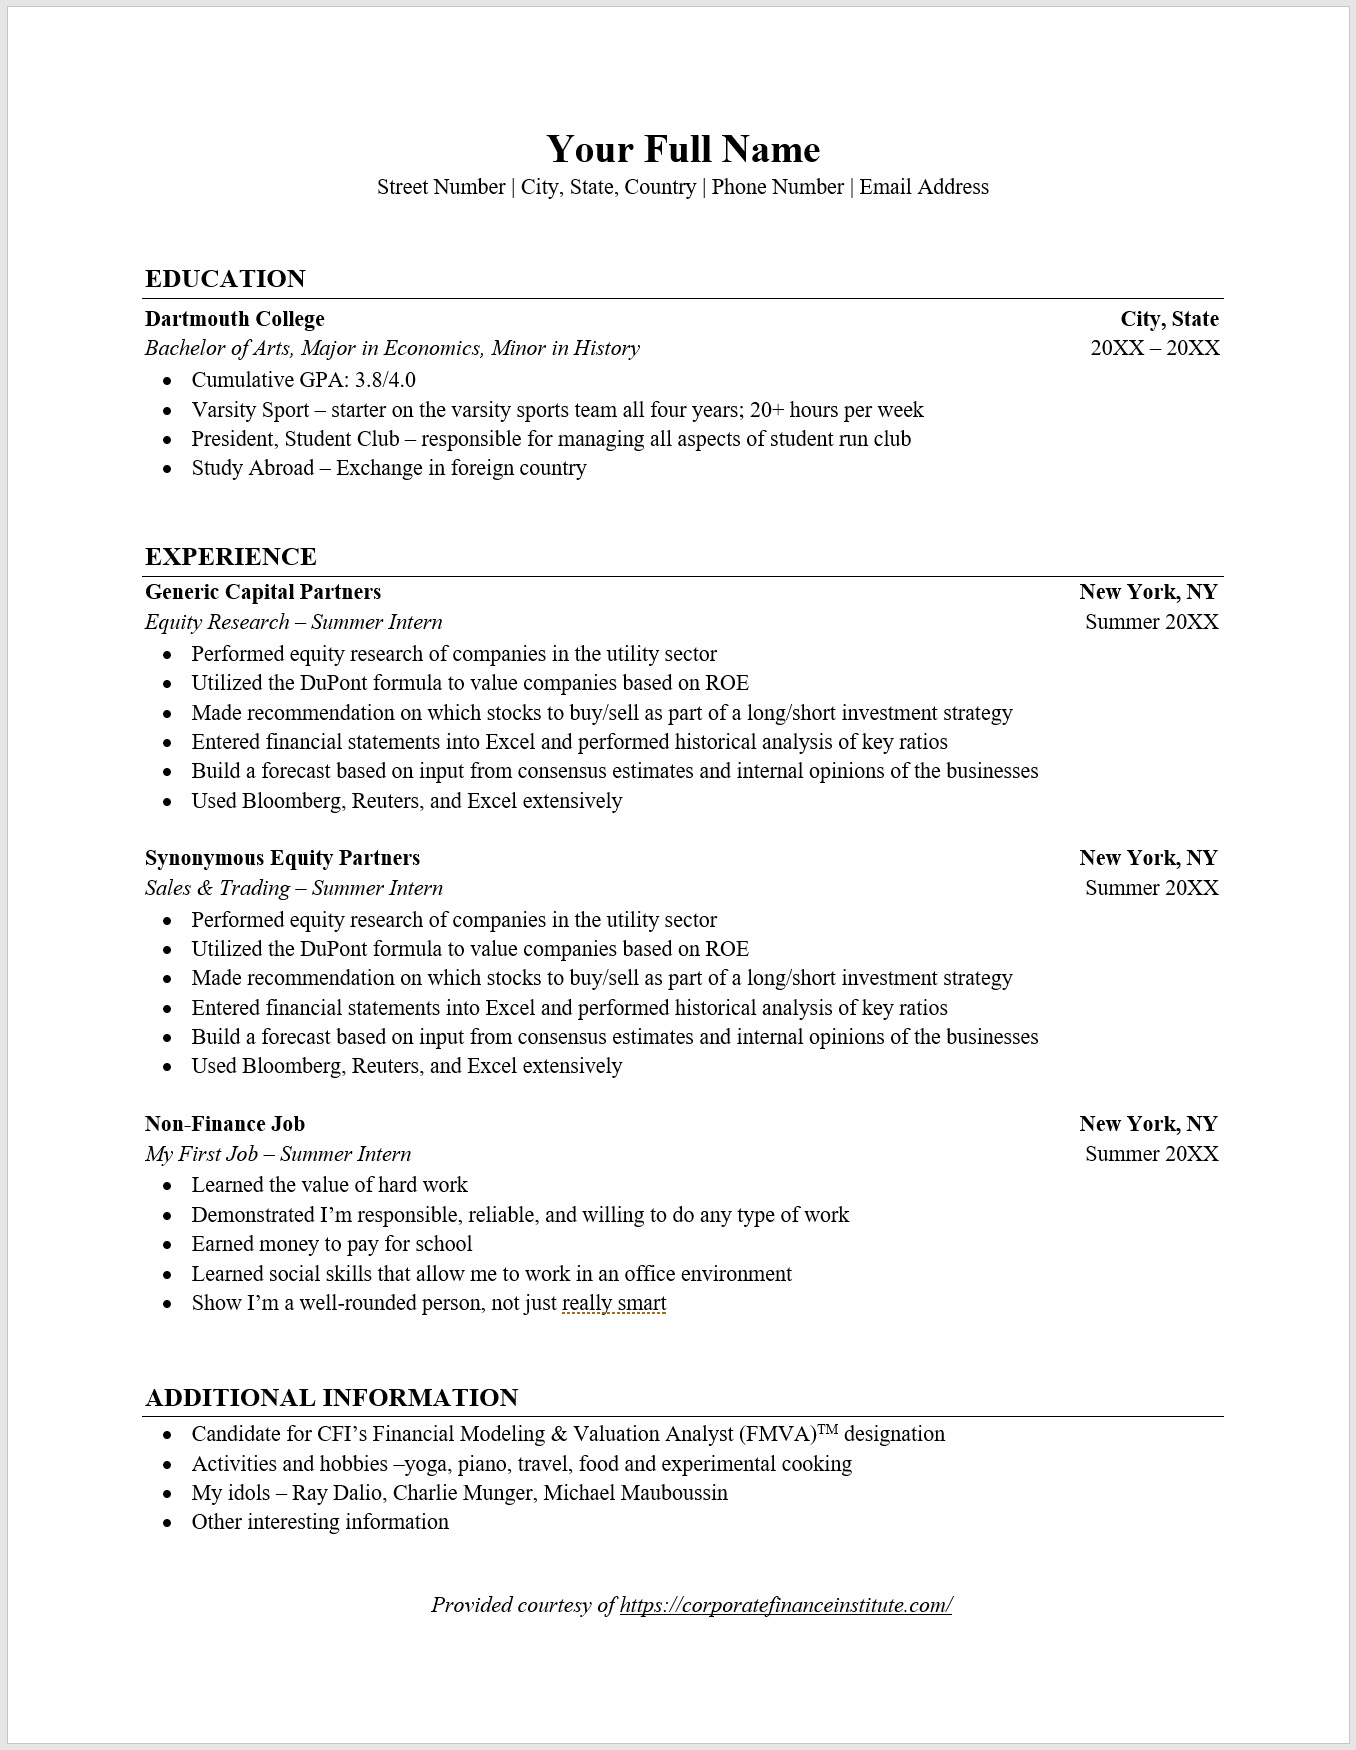 How To List Minor On Resume